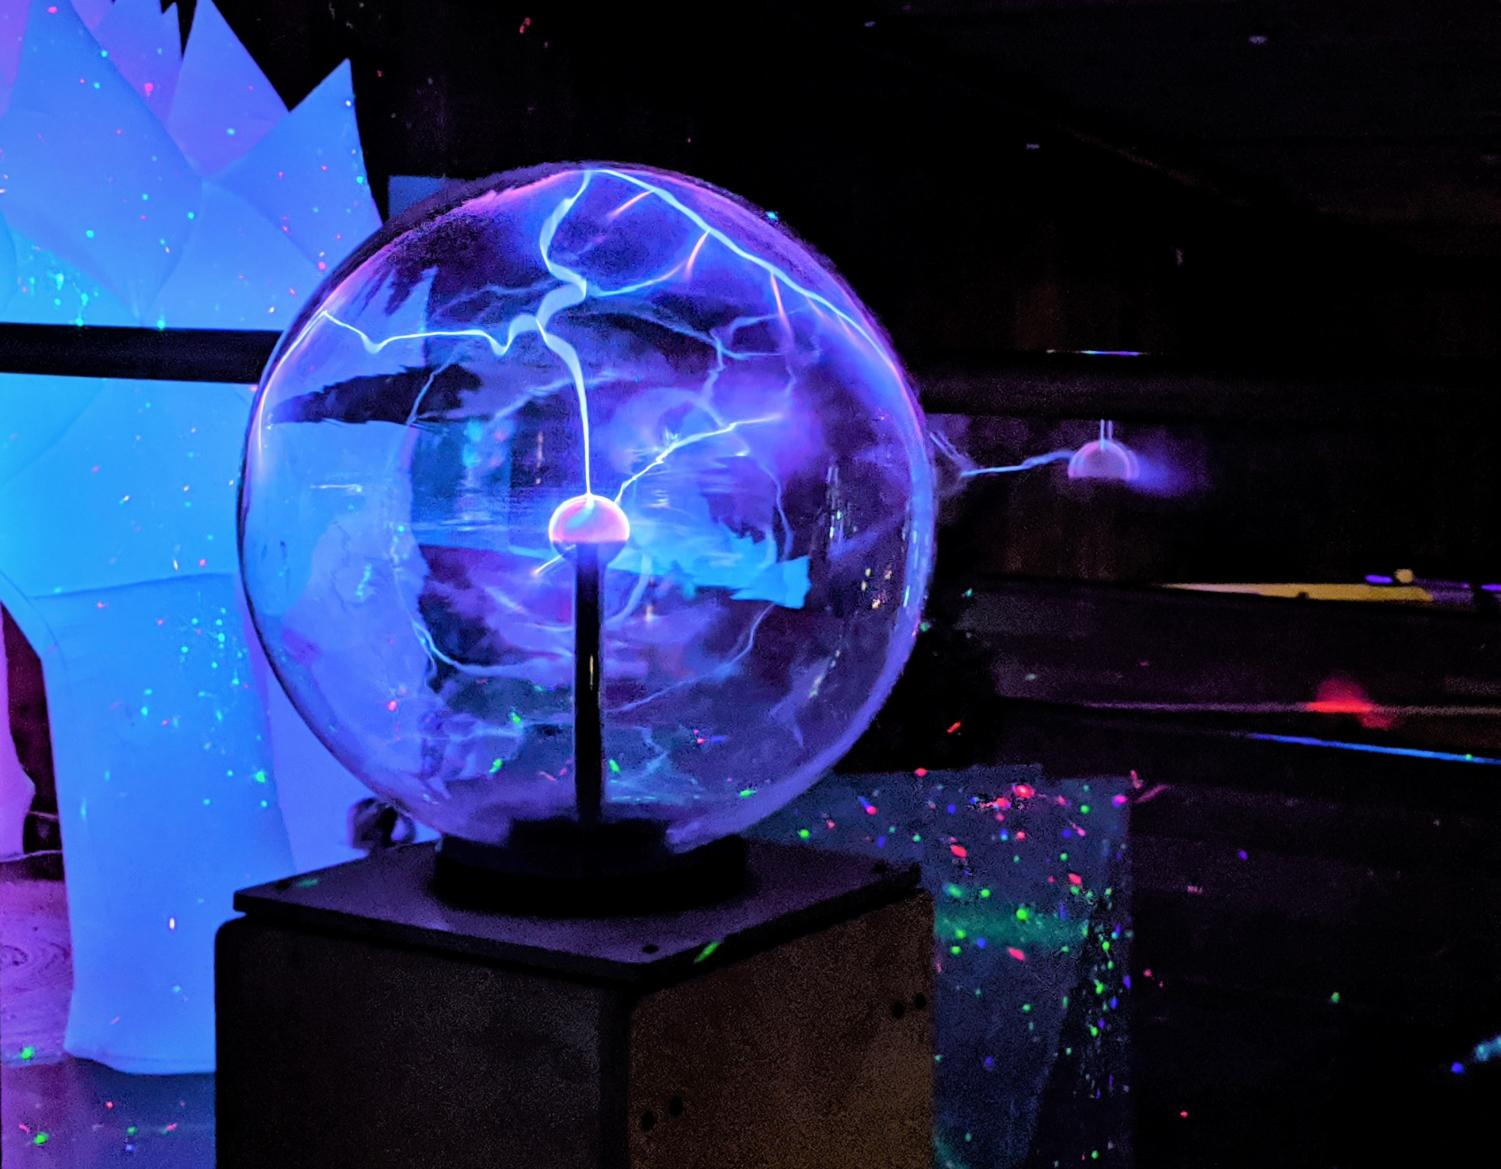 While it is actually plasma instead of light, the plasma ball in CuriOdyssey's IlluminOdyssey exhibit still serves to amaze the children who visit.